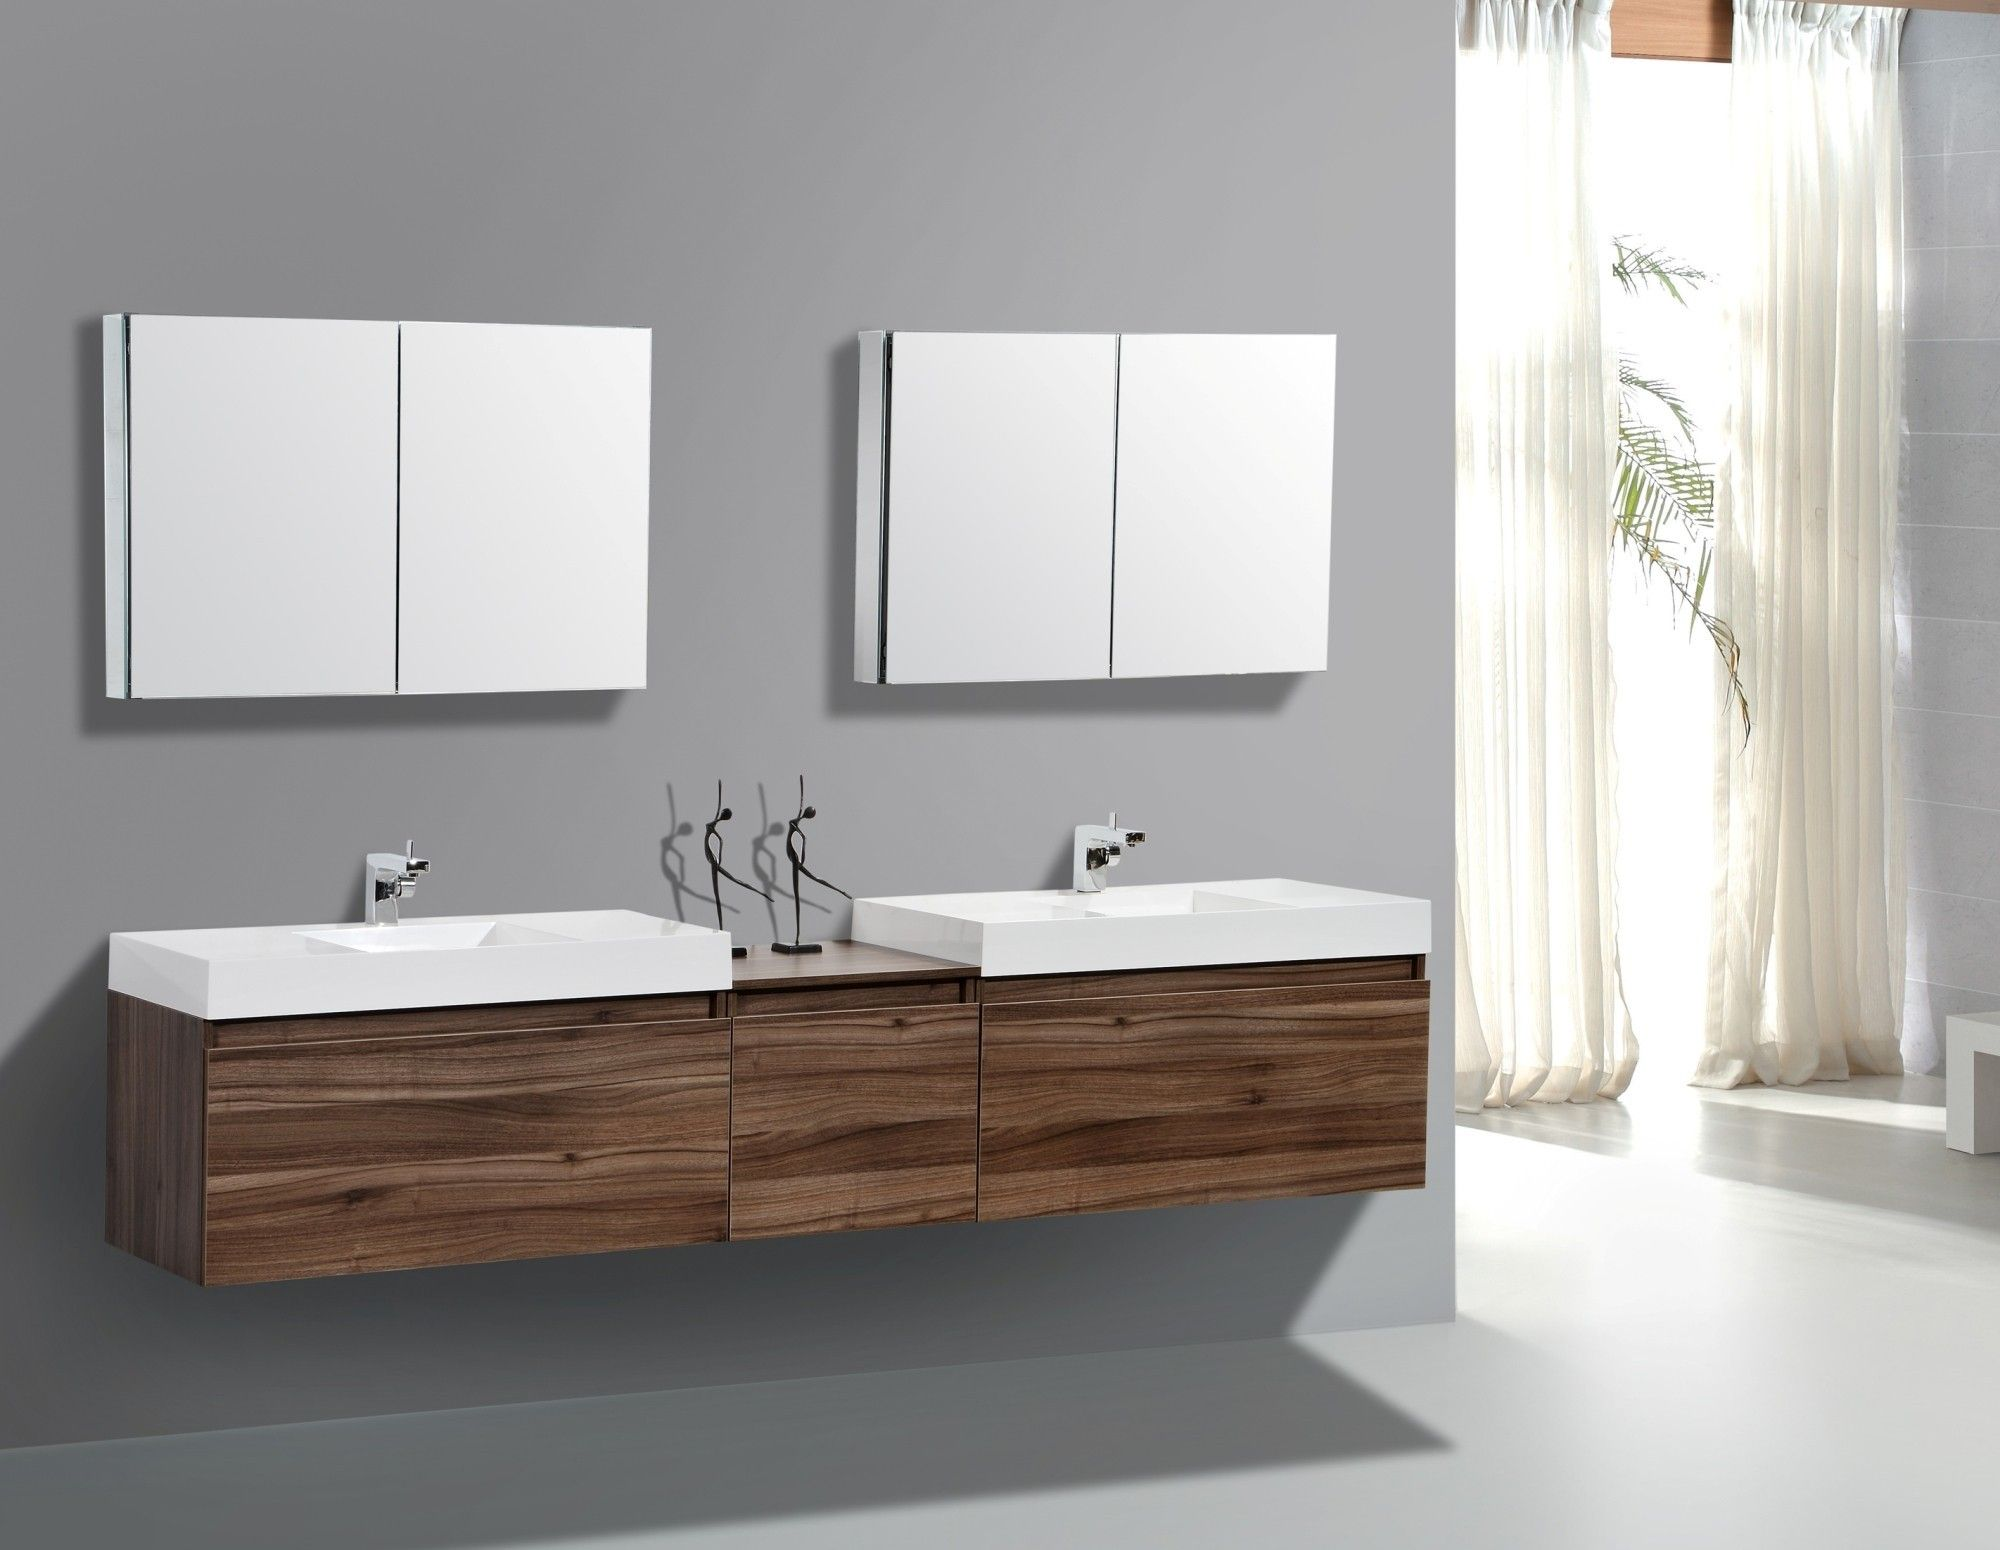 black full some astonishing style plus faucet drawers ideas mirror cabinet ogee double size carving handle well a using glossy flanked granite door best steps also furniture vanity bathroom sink under edge and as vanities corner of unit top two brass white painting countertops with knob